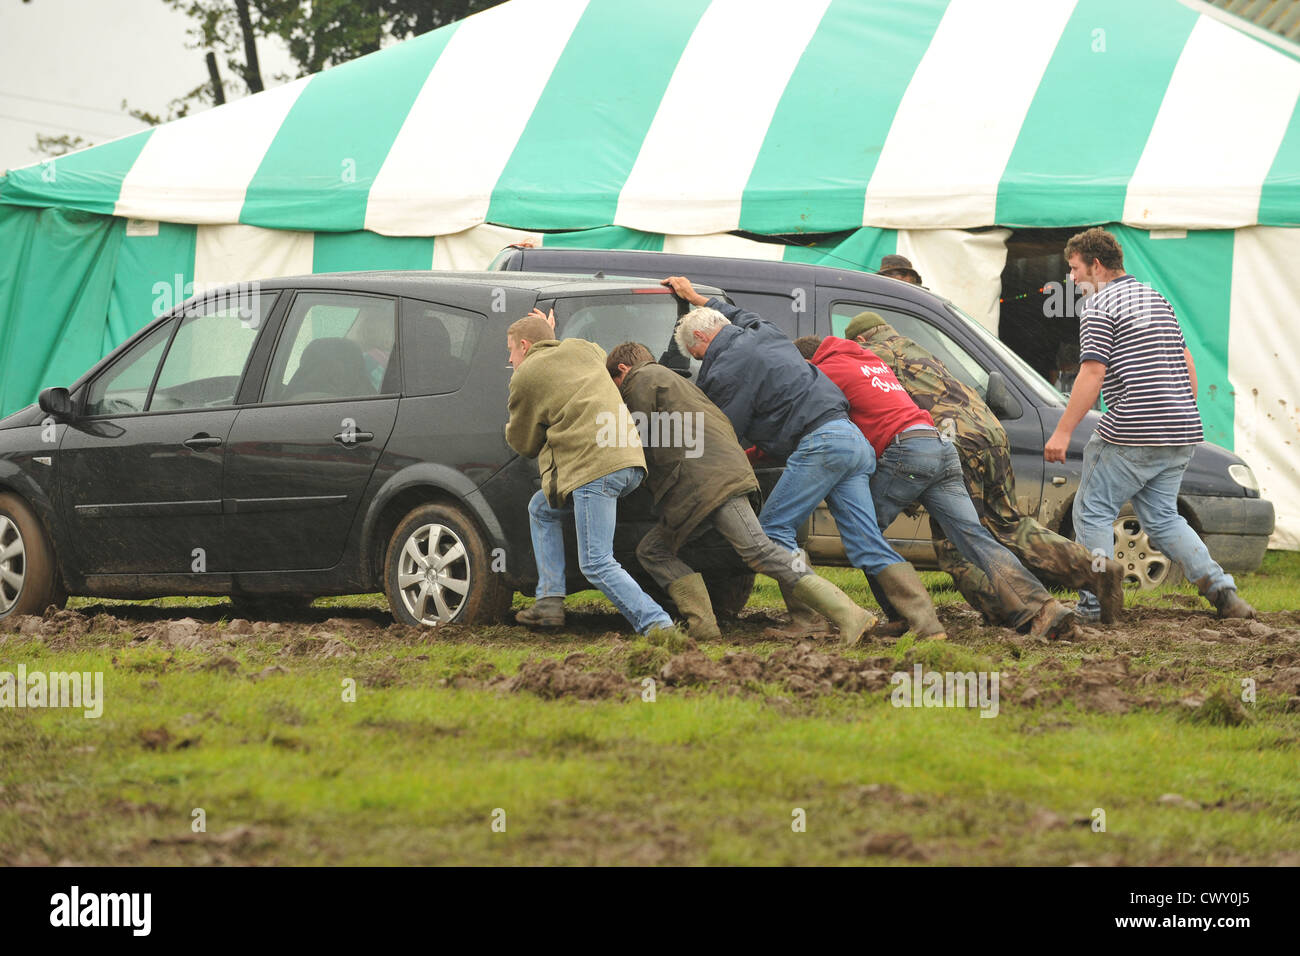 pushing a car stuck in mud Stock Photo